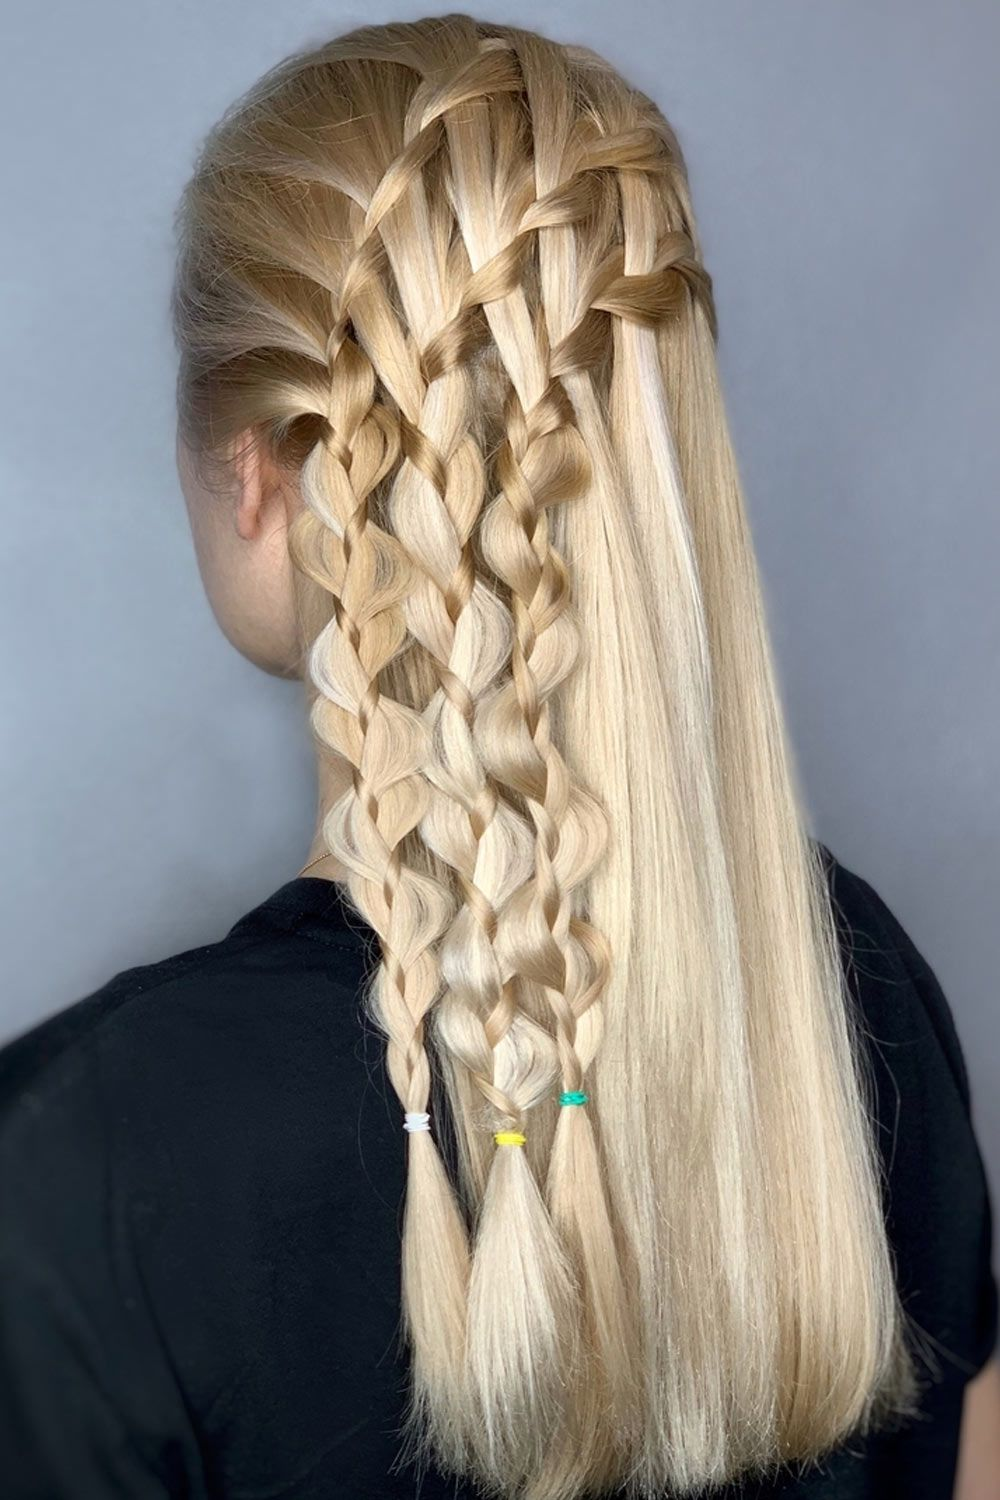 Hairstyle For Long Hair With Ladder Braids